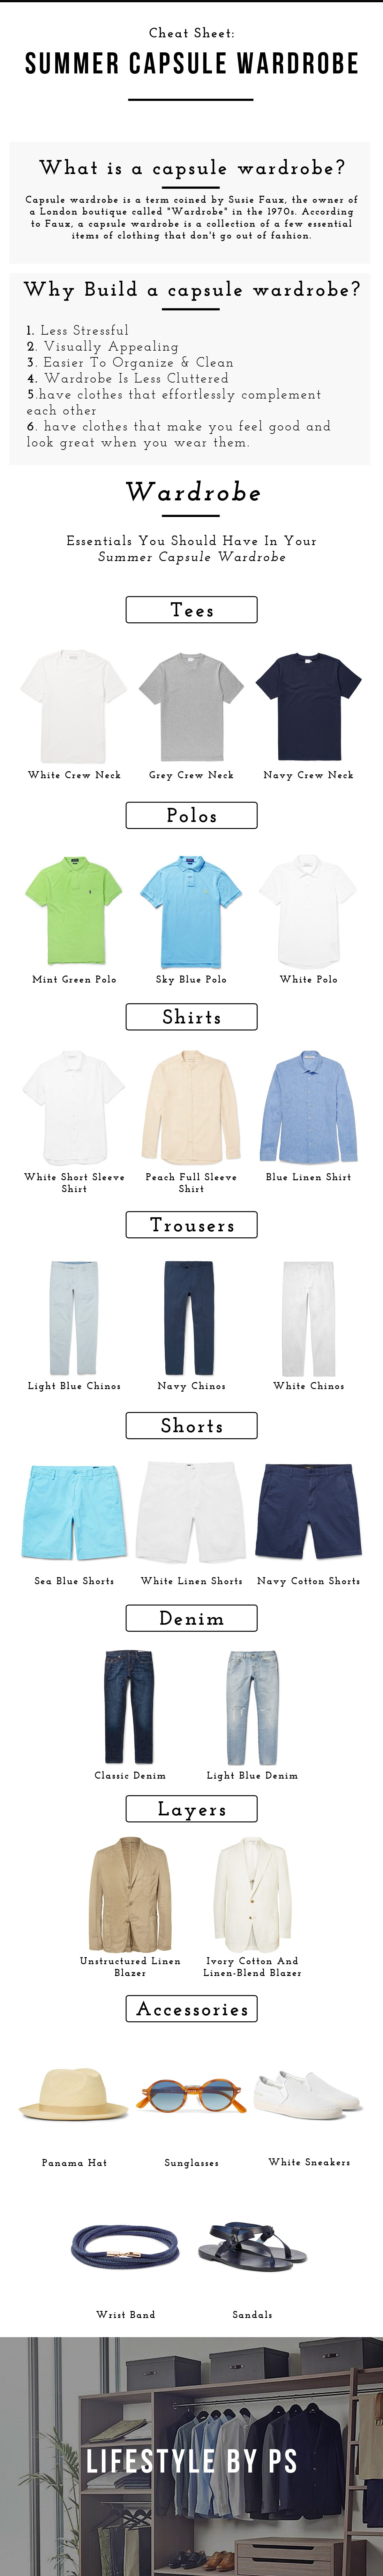 Summer Capsule Wardrobe For Men Infographic